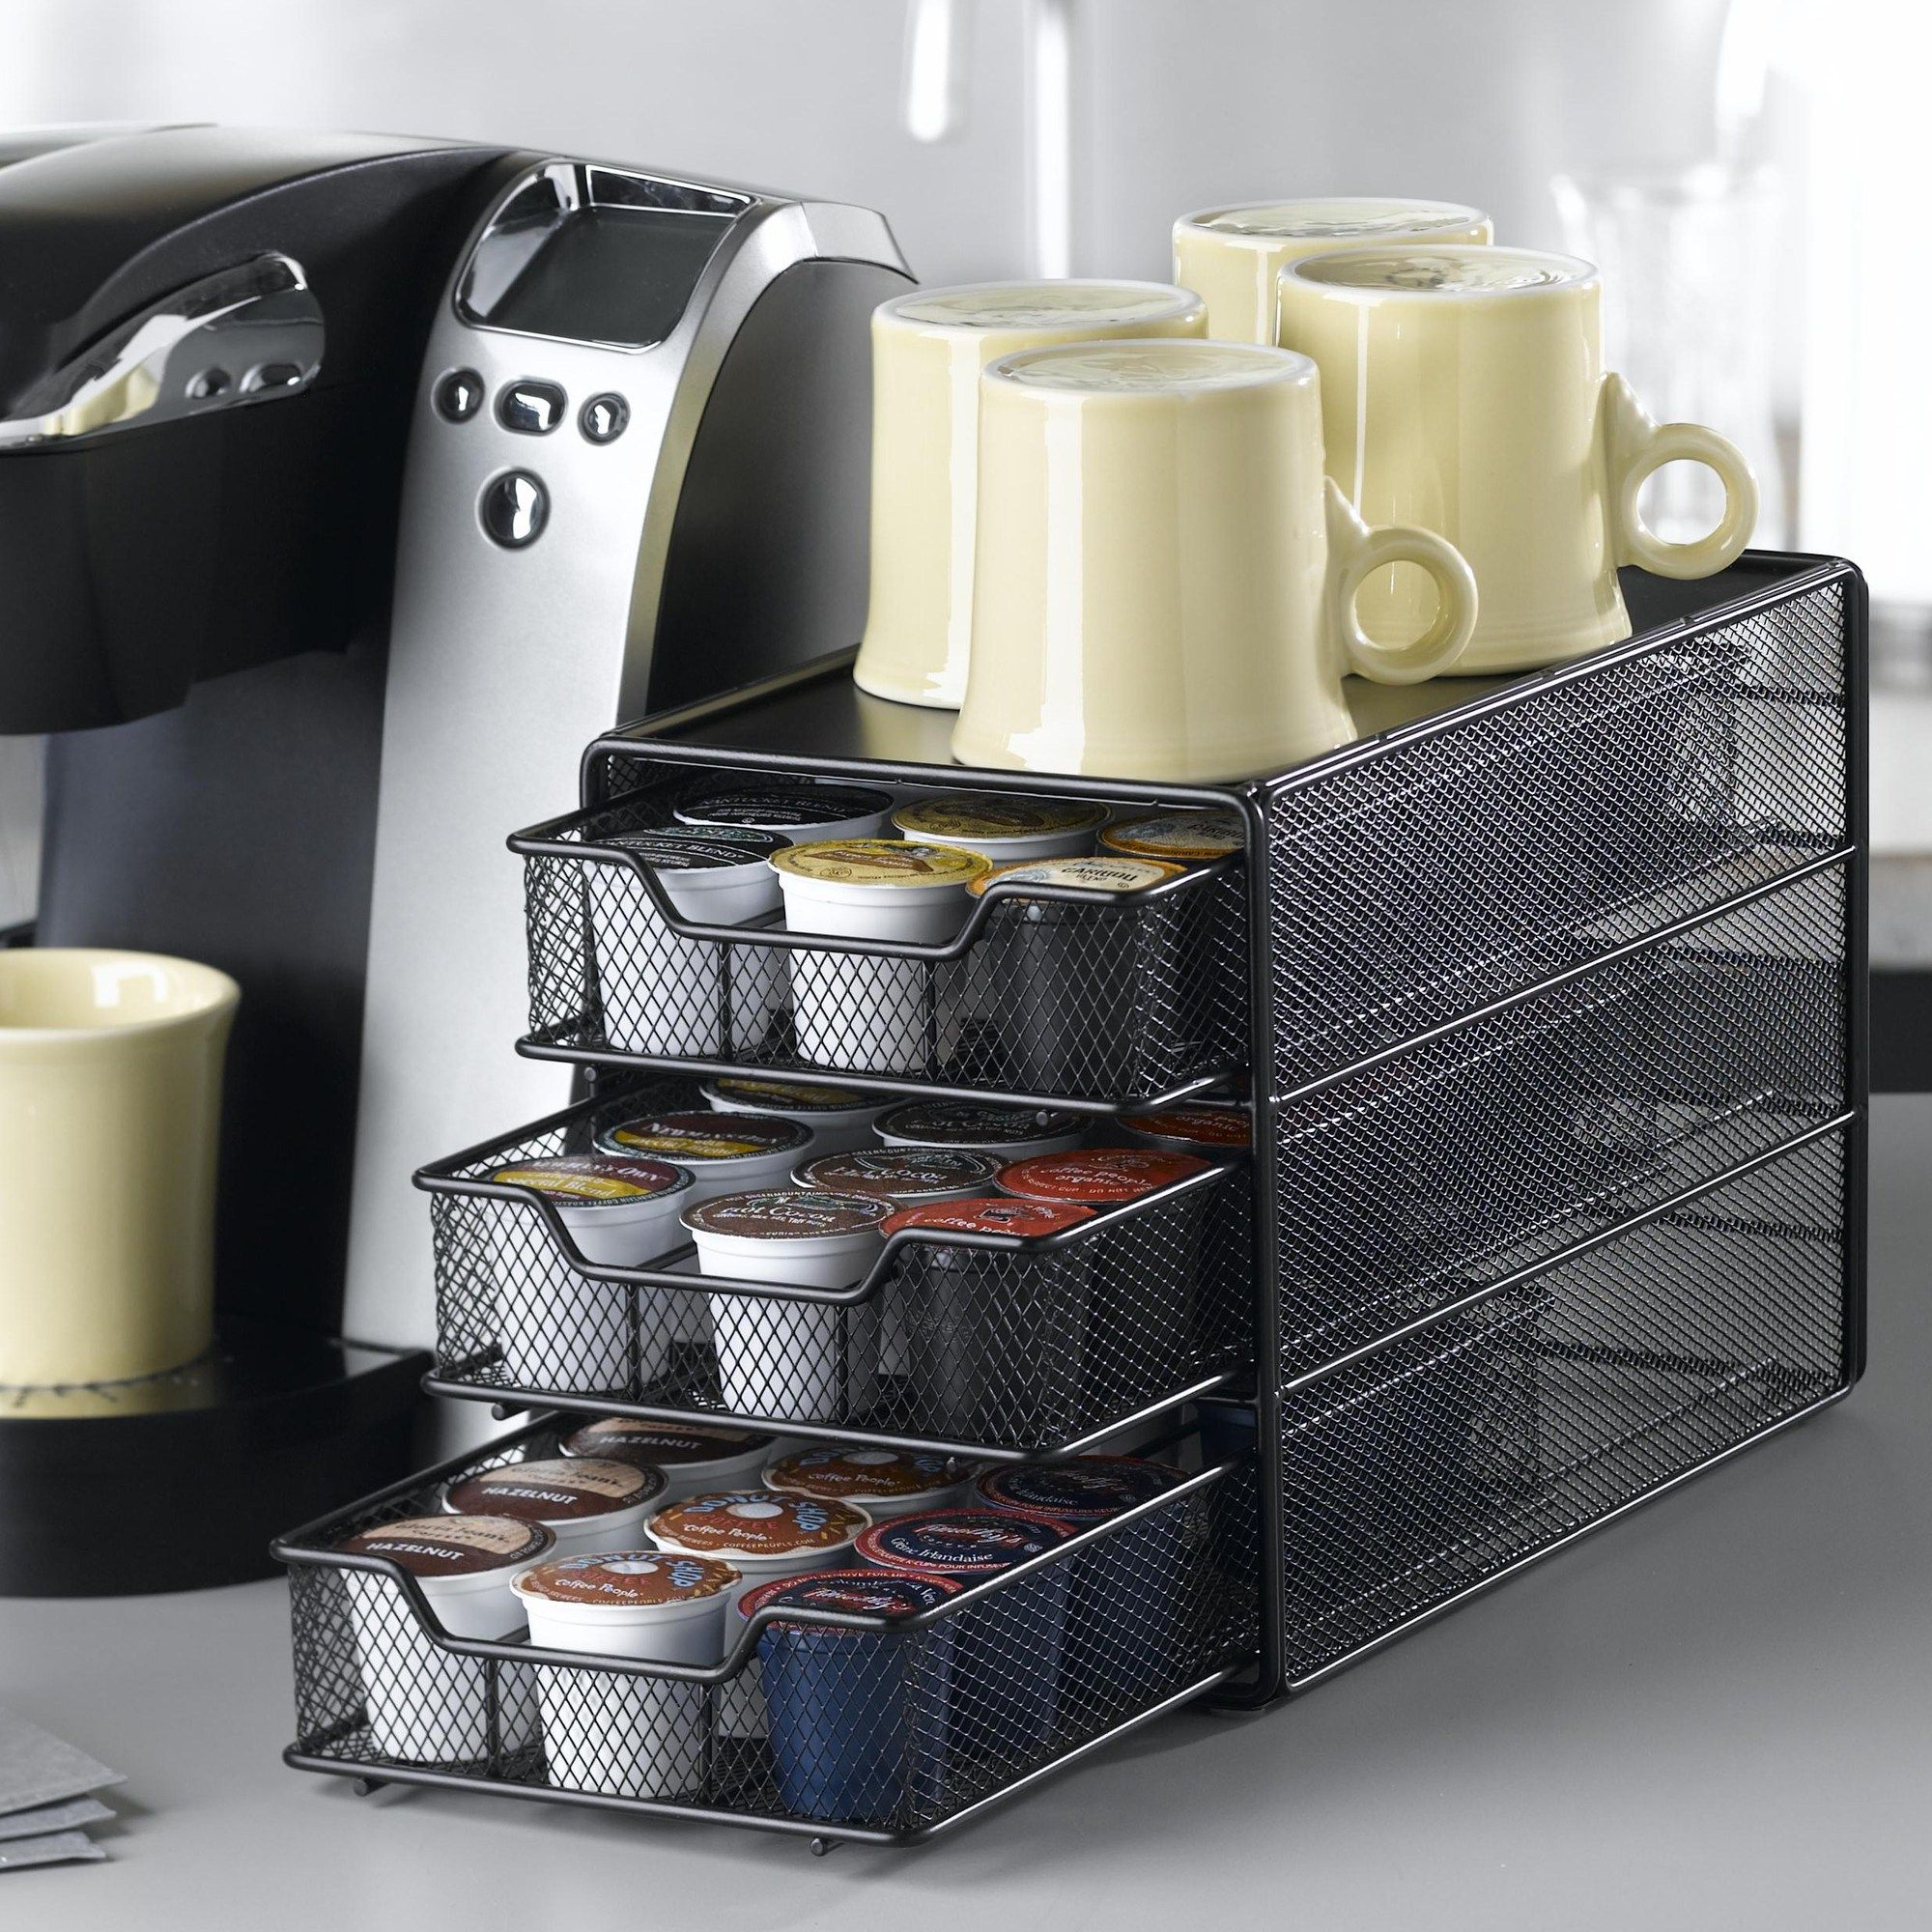 Delicieux Iu0027ve Got This One U0026 The Under The Keurig Version...K Cup Storage Drawers